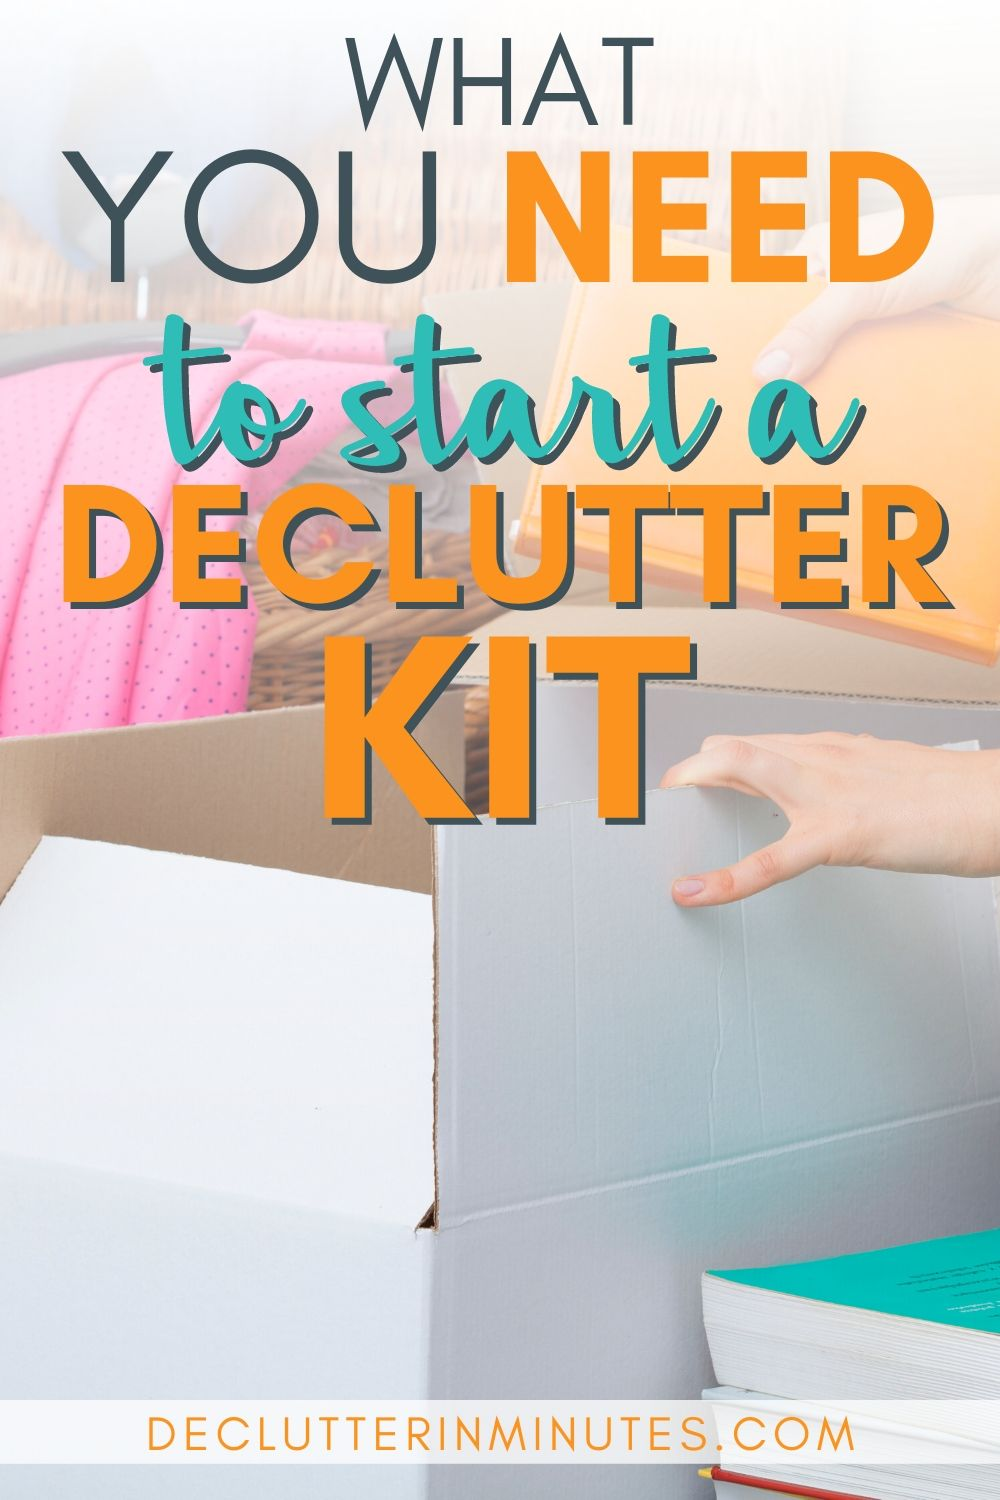 Want to know my secret for a clutter-free home? A decluttering kit! A basket of my top organizing tools that you can grab whenever the urge to declutter hits. I even tucked inside a few of my super-secret clutter busting tools that will help you create a home you love. #declutteringtools #declutteringkit #clutter #declutterinminutes